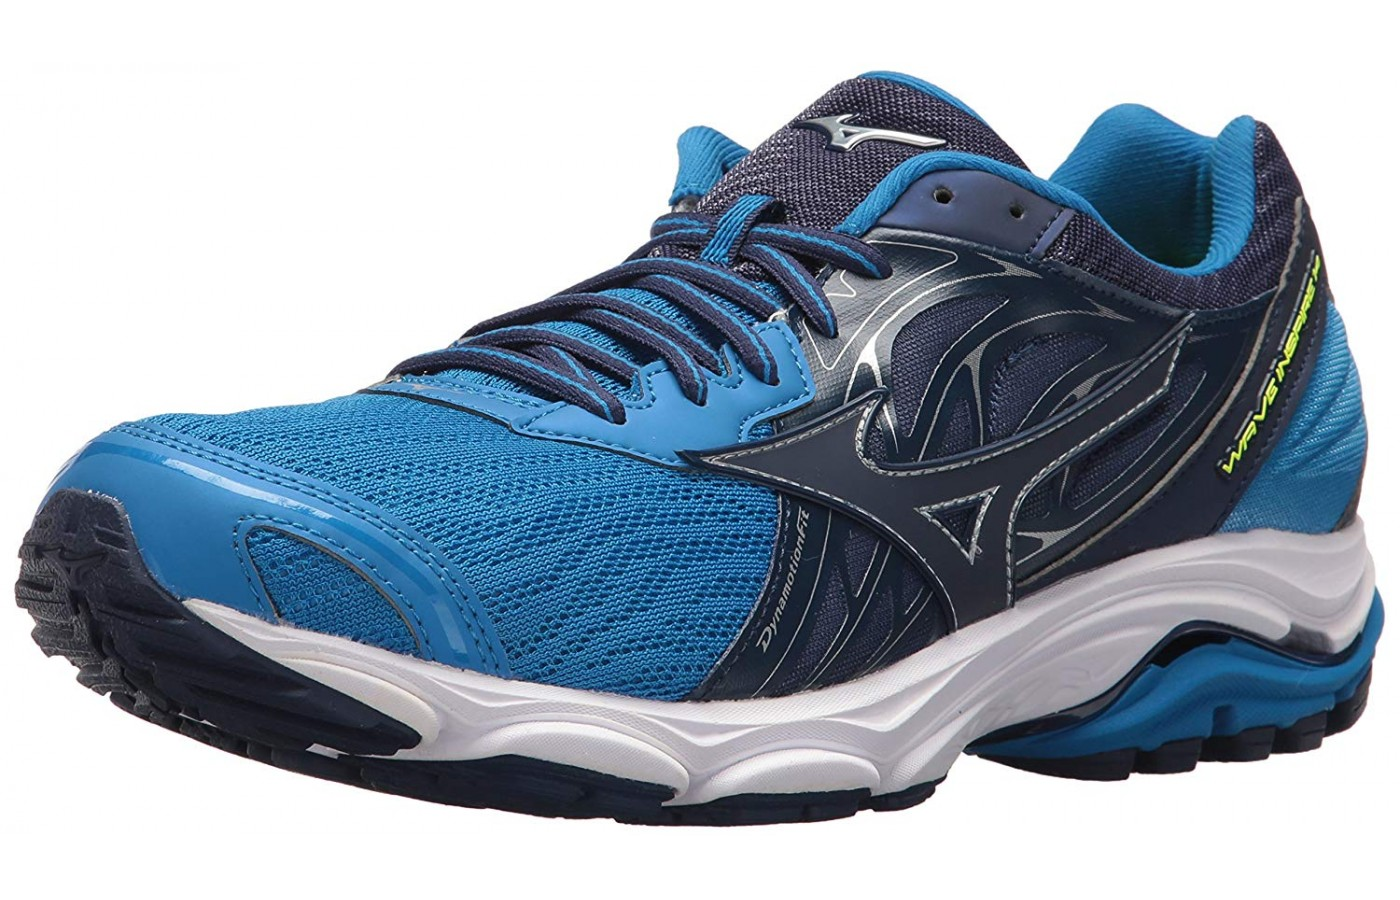 The Mizuno Wave Inspire 14 shown from the front/side view